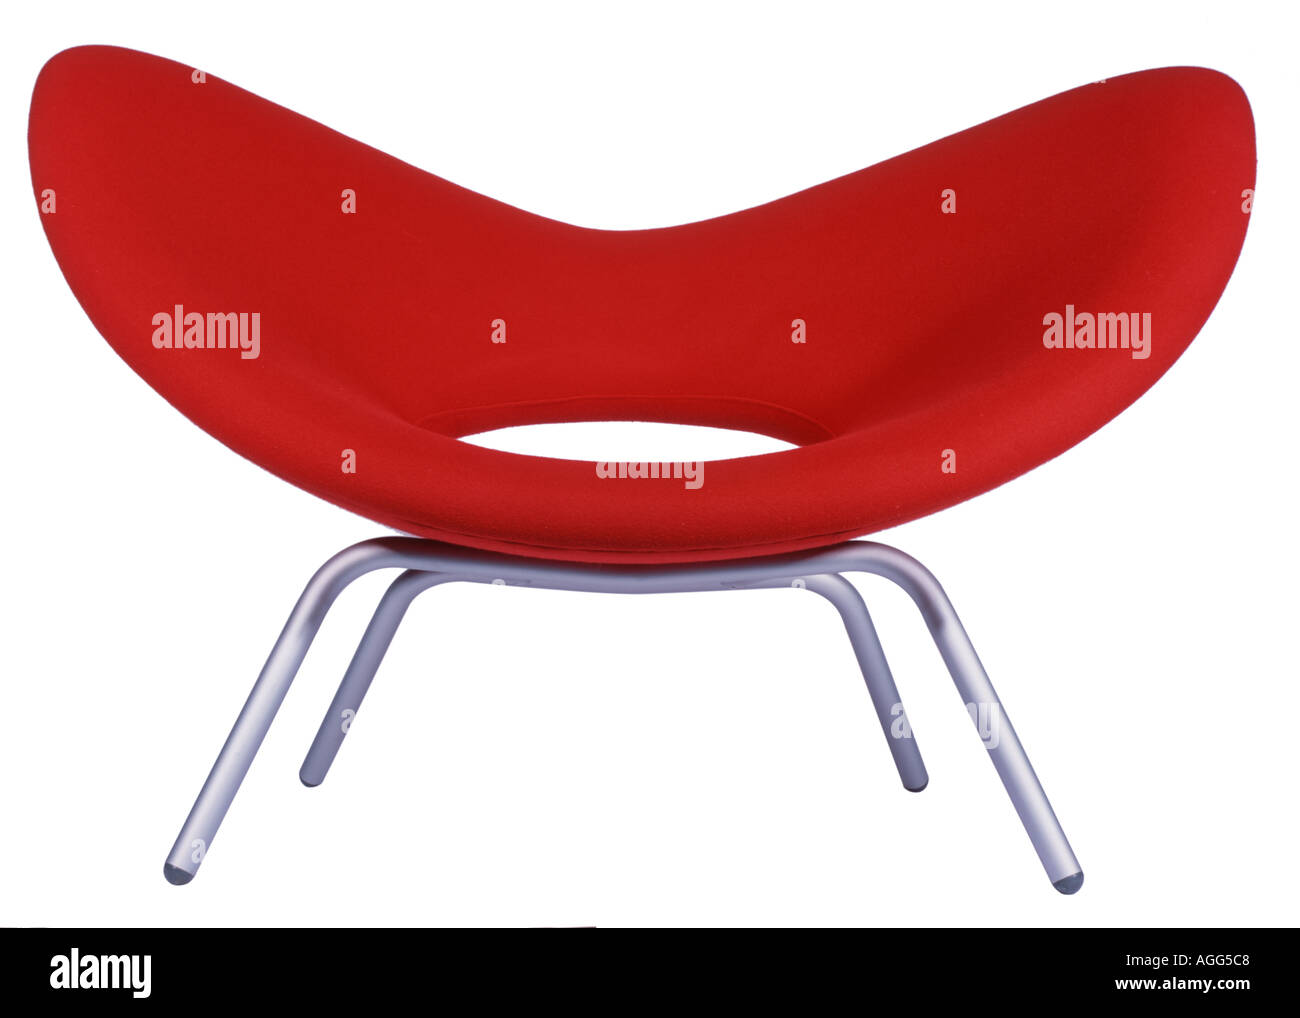 metal and red fabric chair - Stock Image